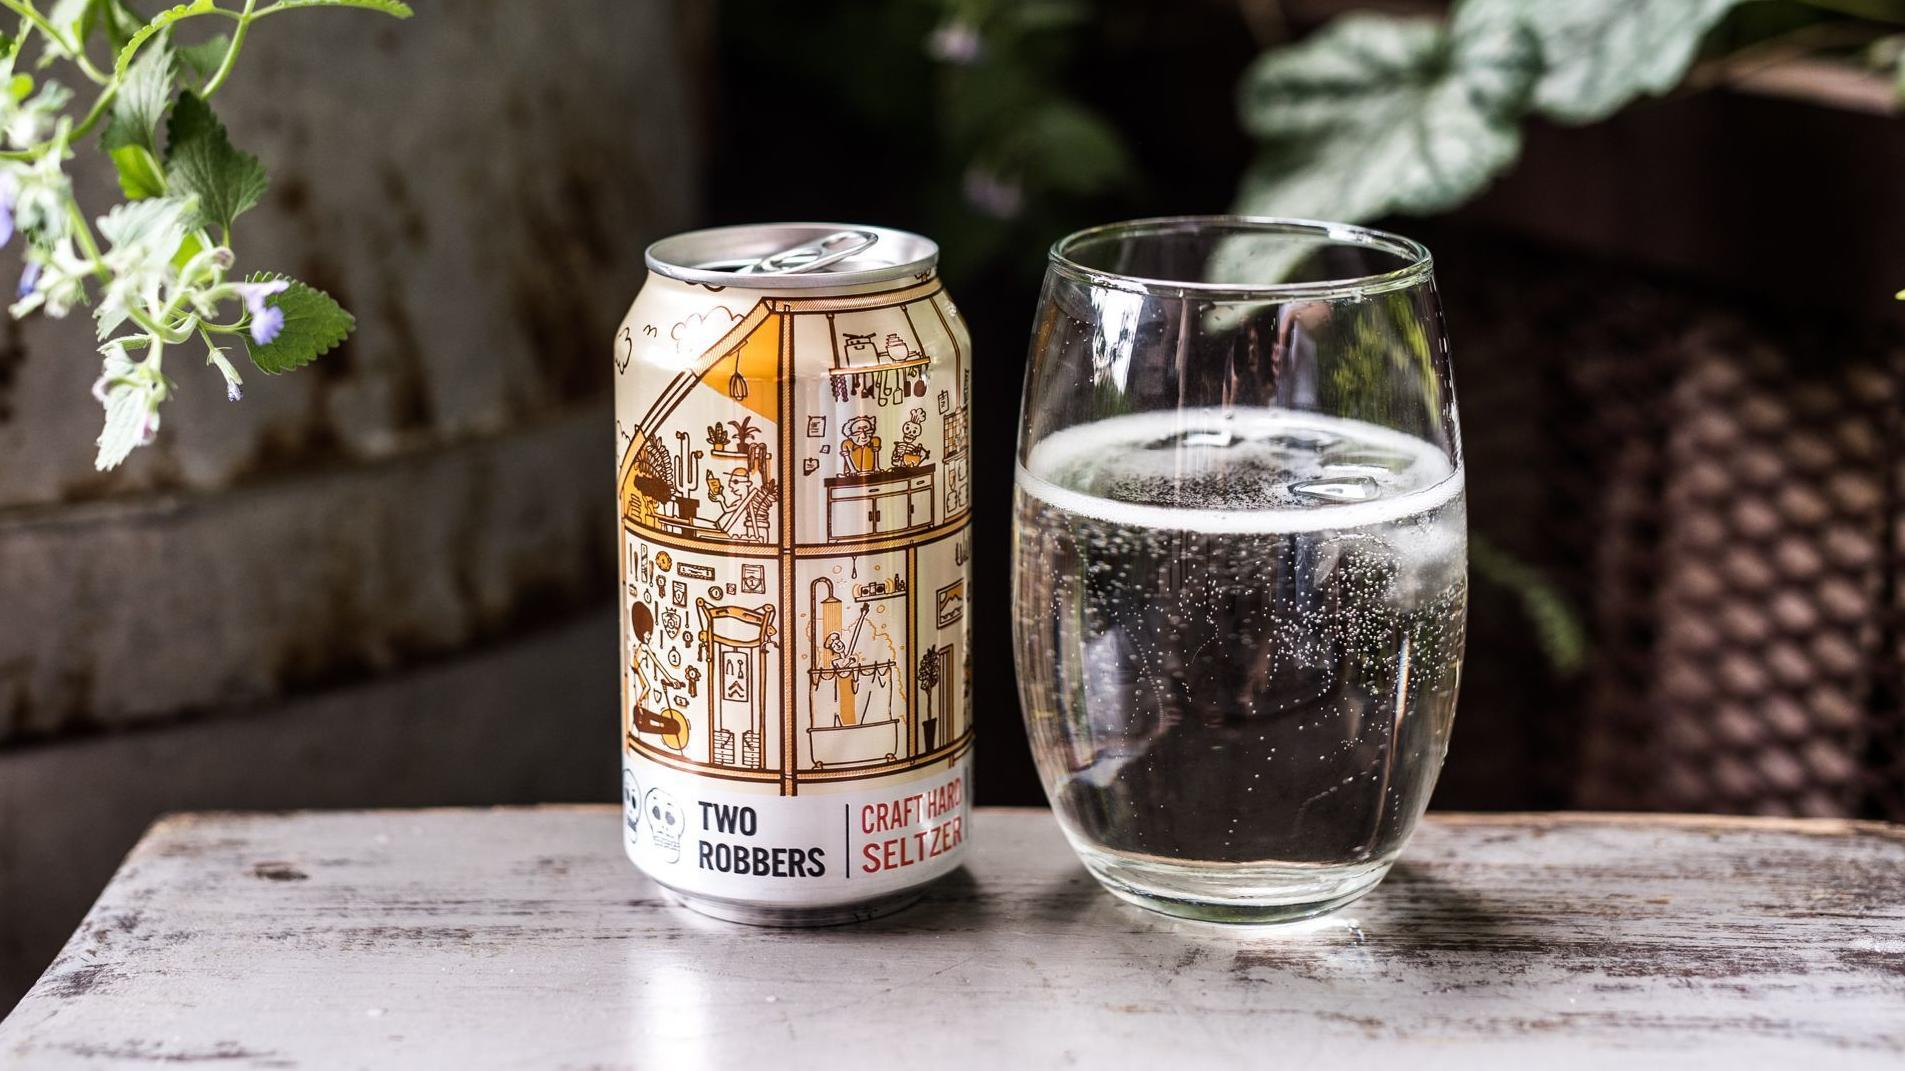 Two Robbers Craft Hard Seltzer